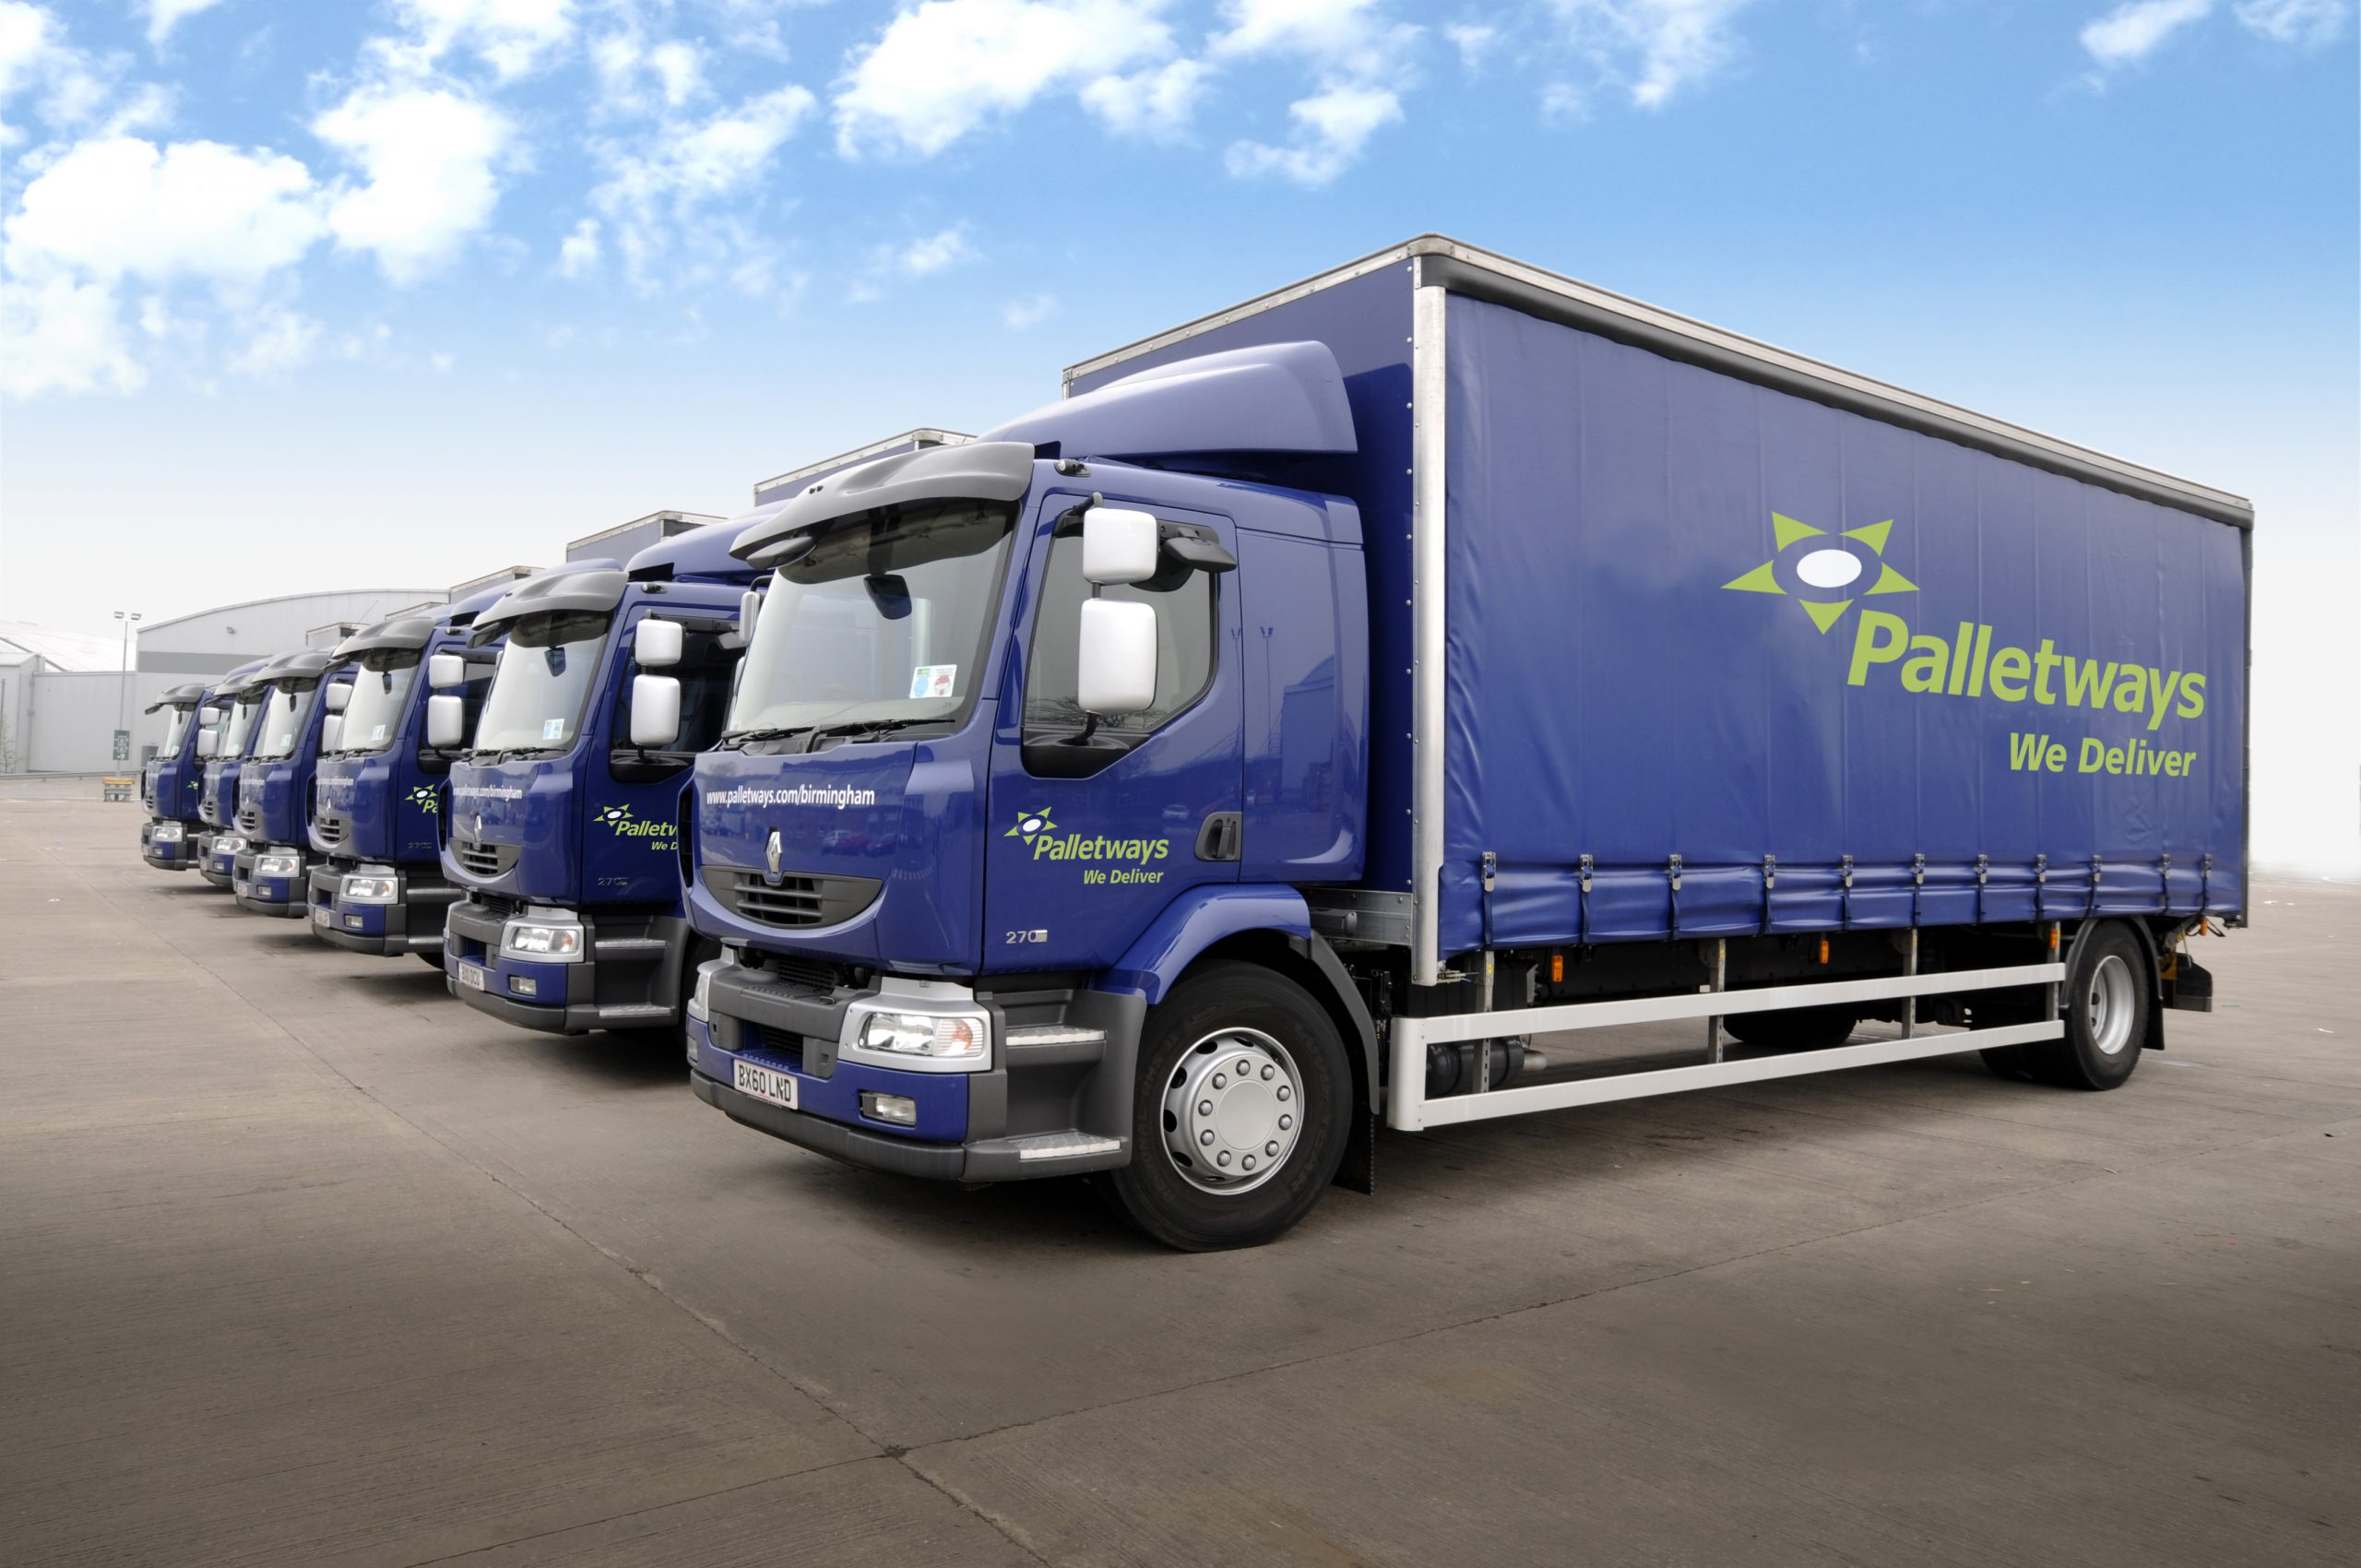 Palletways expands into Bulgaria and Romania